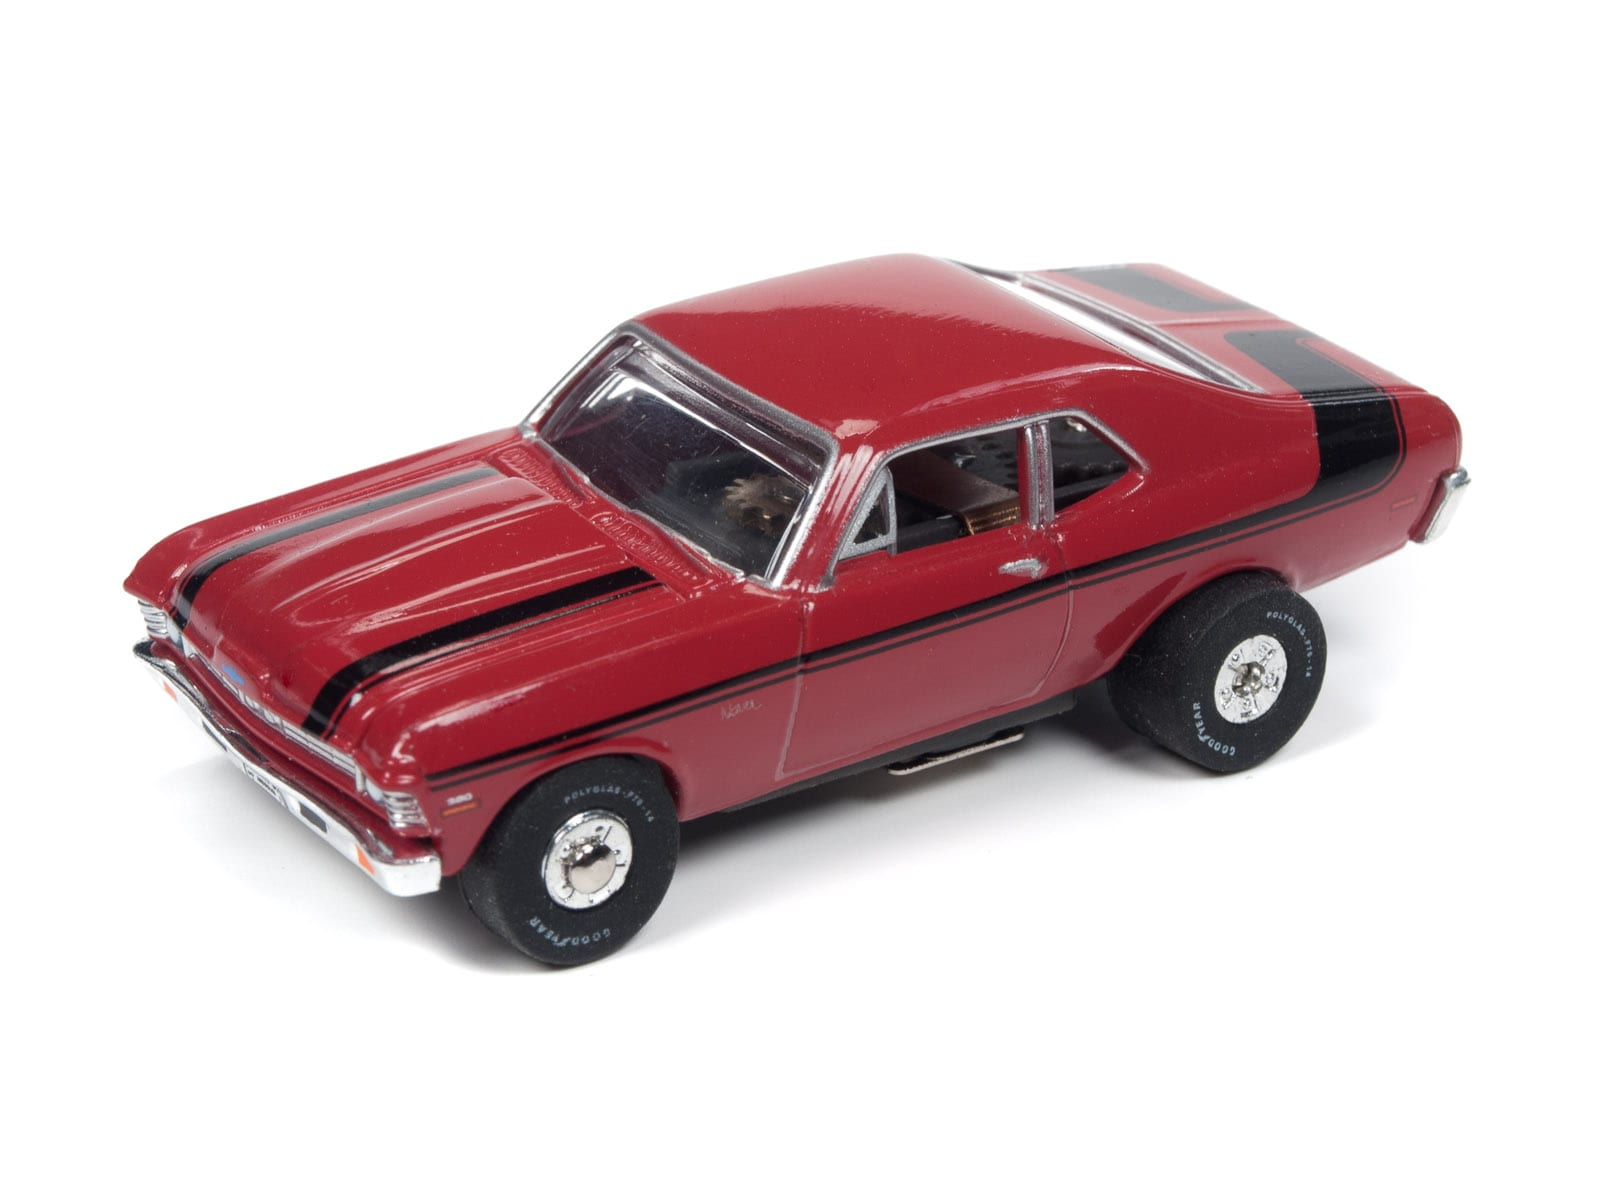 Silver Screen Machines X Traction Thunderjet 4 Gear Release 19 also Showthread in addition Litchi Texture Flip Leather Case With Card Slots Holder For Htc One Mini 2 M8 Mini Red moreover Topic furthermore Muscle Cars Usa X Traction Release 20. on dirty slots slot cars